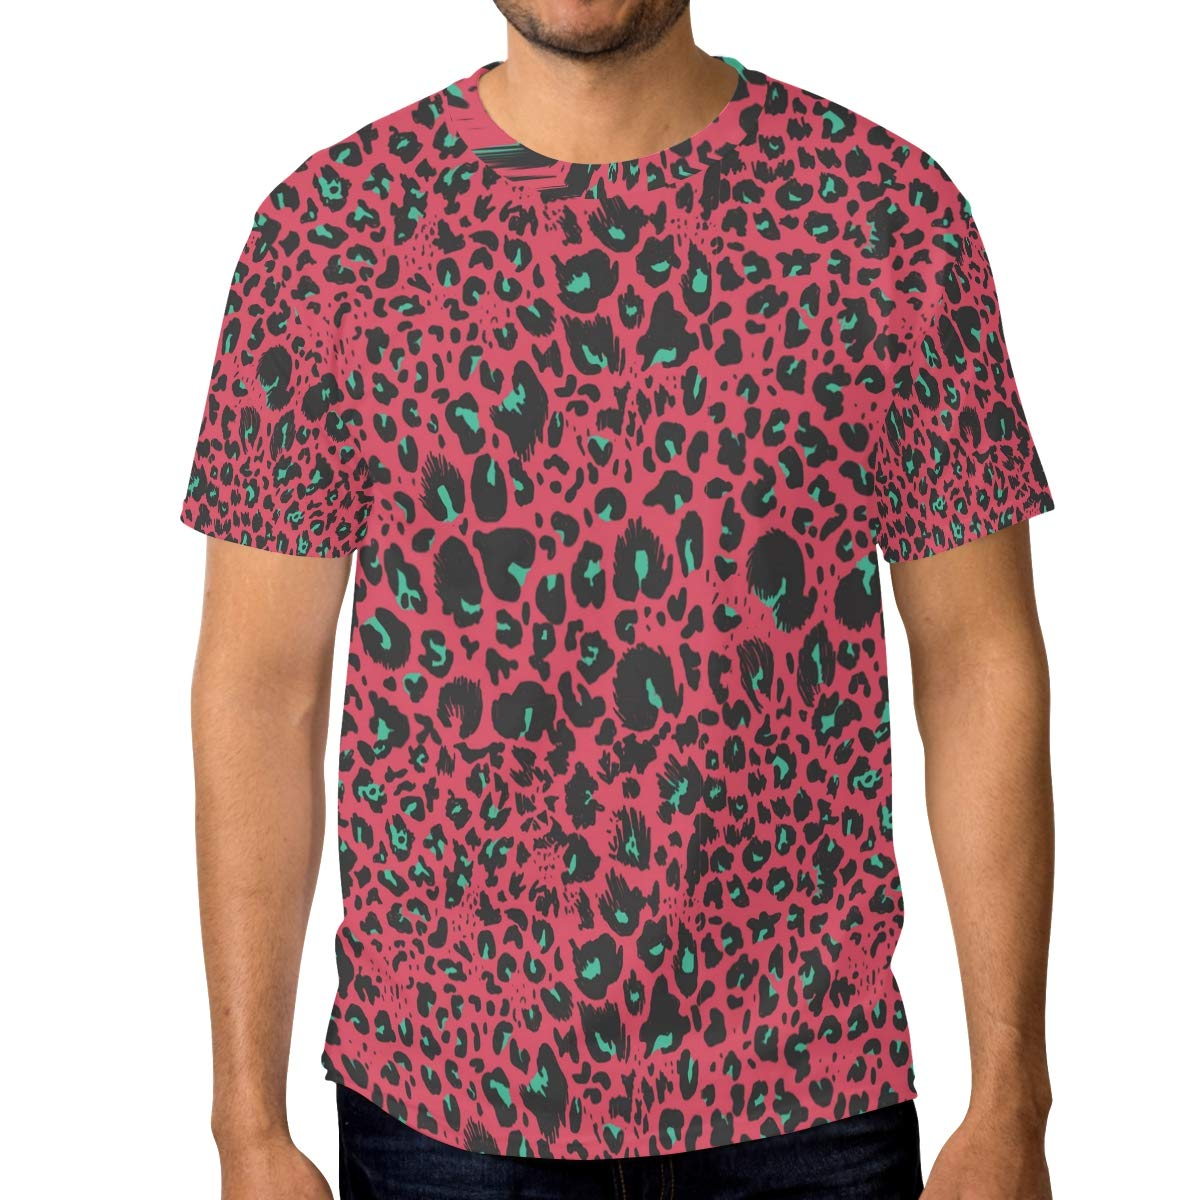 Horror Red Leopard Print Mens T Shirts Graphic Funny Body Print Short T-Shirt Unisex Pullover Blouse